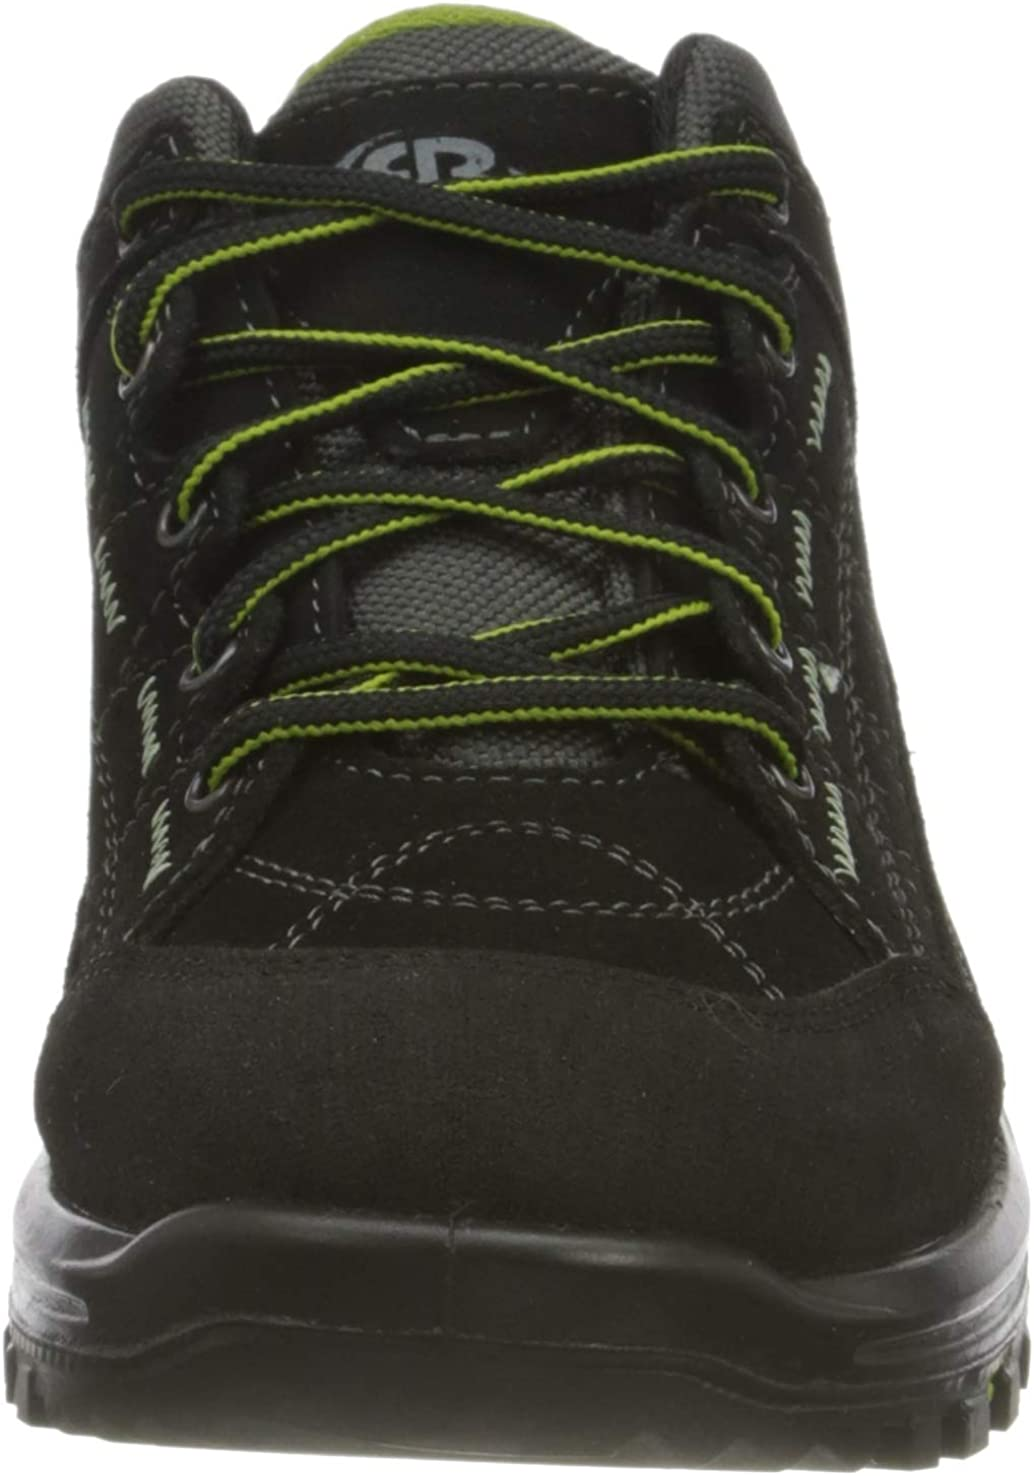 Br/ütting Unisex-Adult Path Cross Country Running Shoe